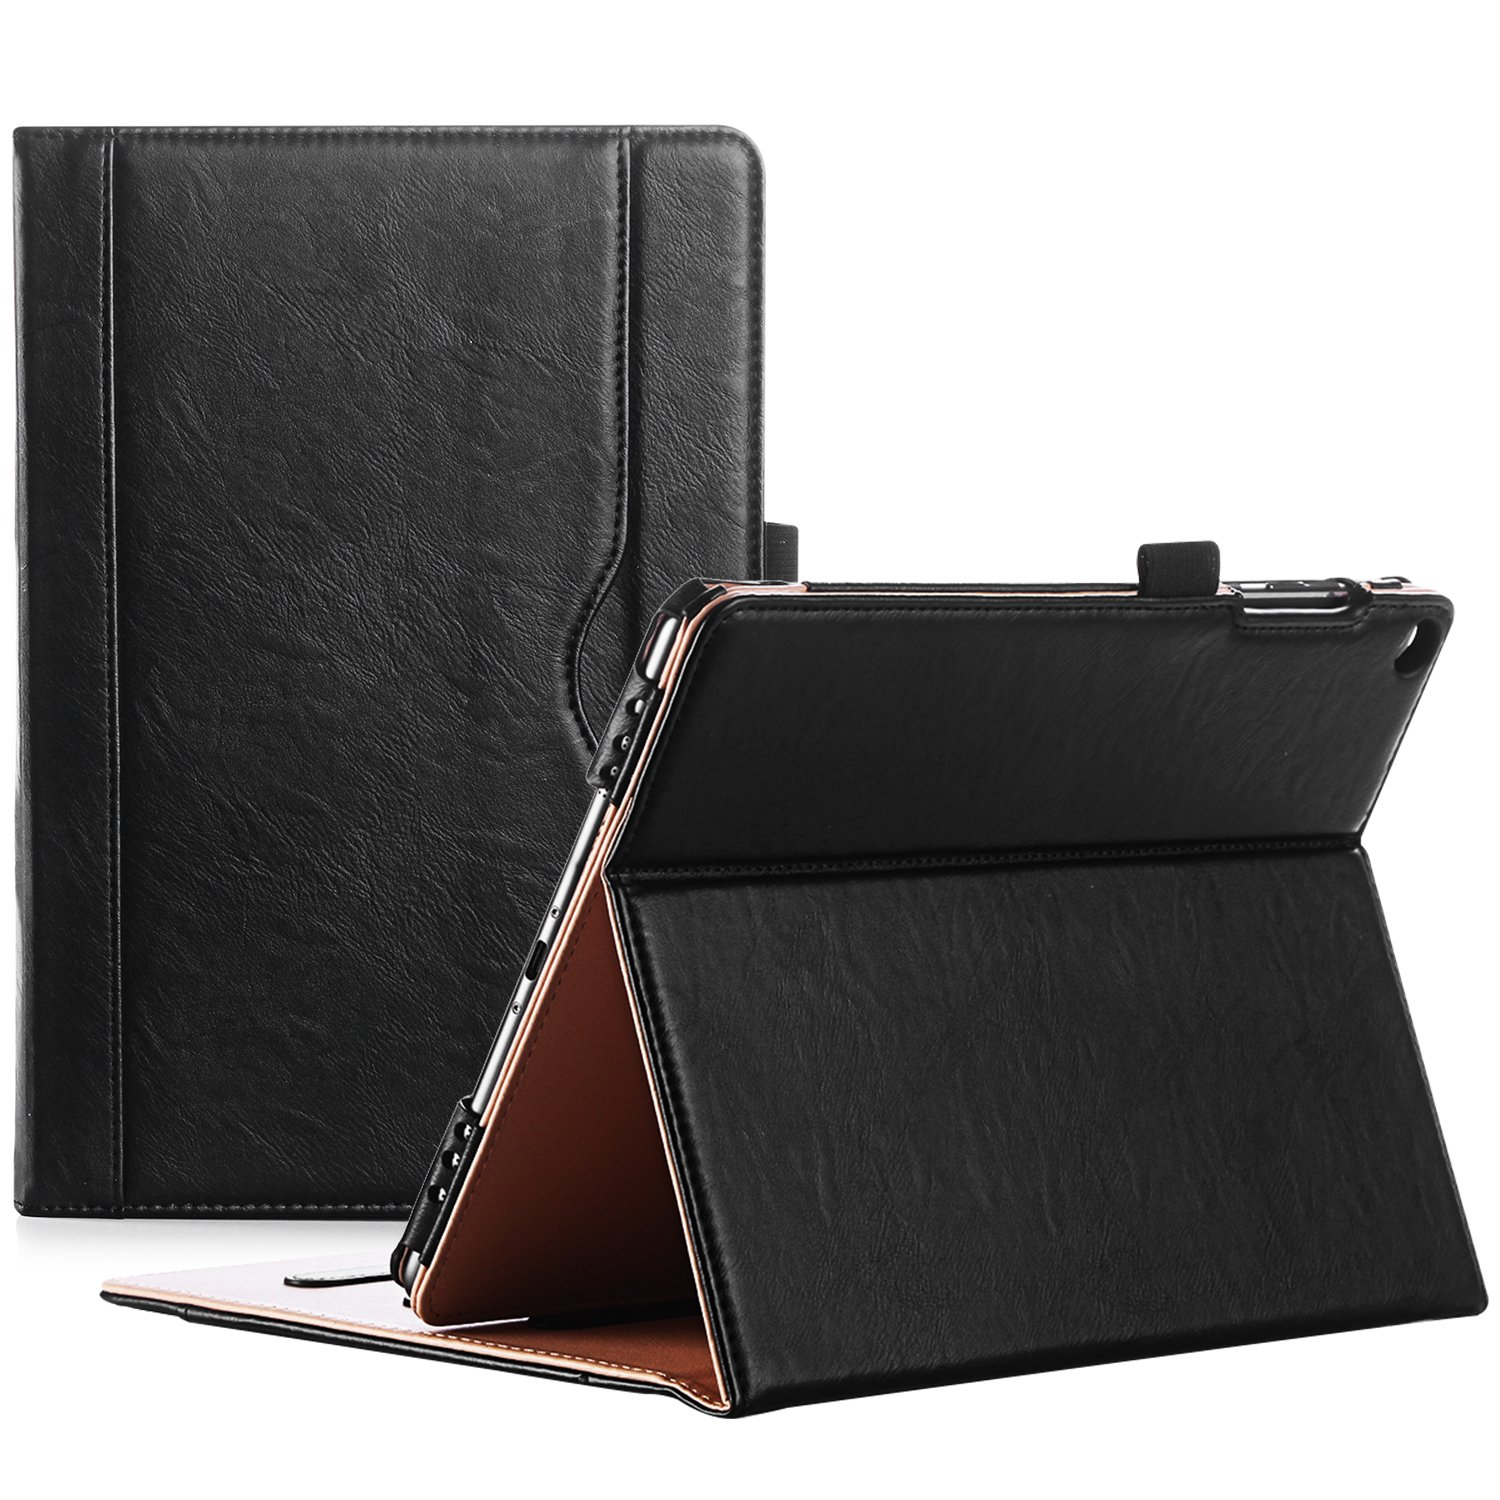 tui procase asus zenpad 3s 10 z500m folio housse pour tablet noir ebay. Black Bedroom Furniture Sets. Home Design Ideas